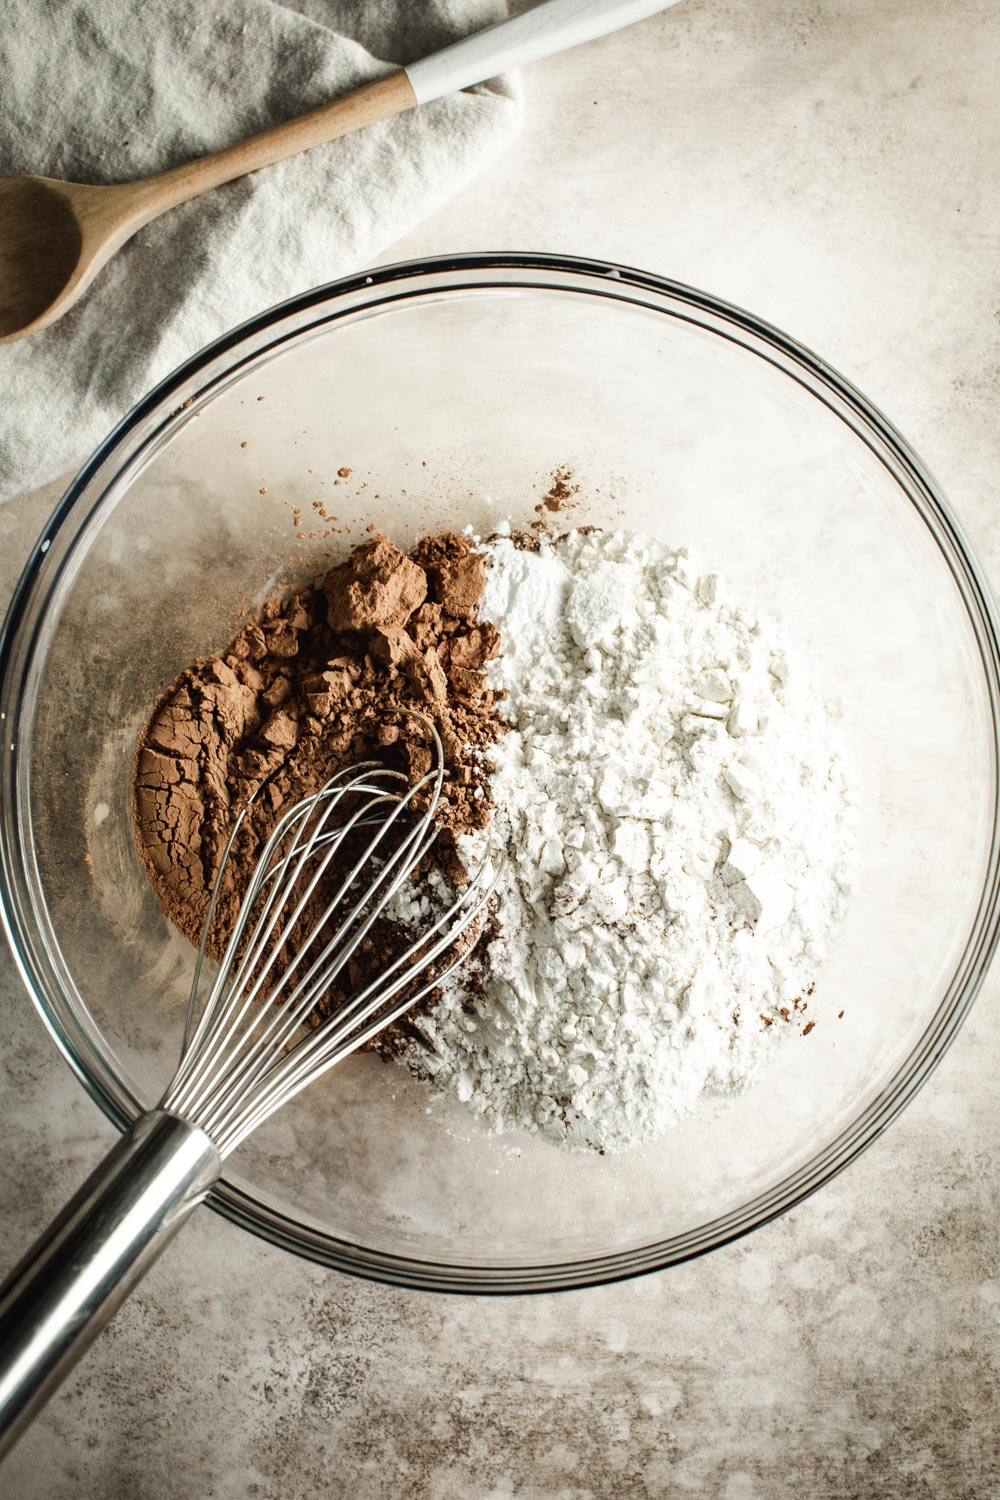 Chocolate banana bread dry ingredients in a mixing bowl with a wire whisk.